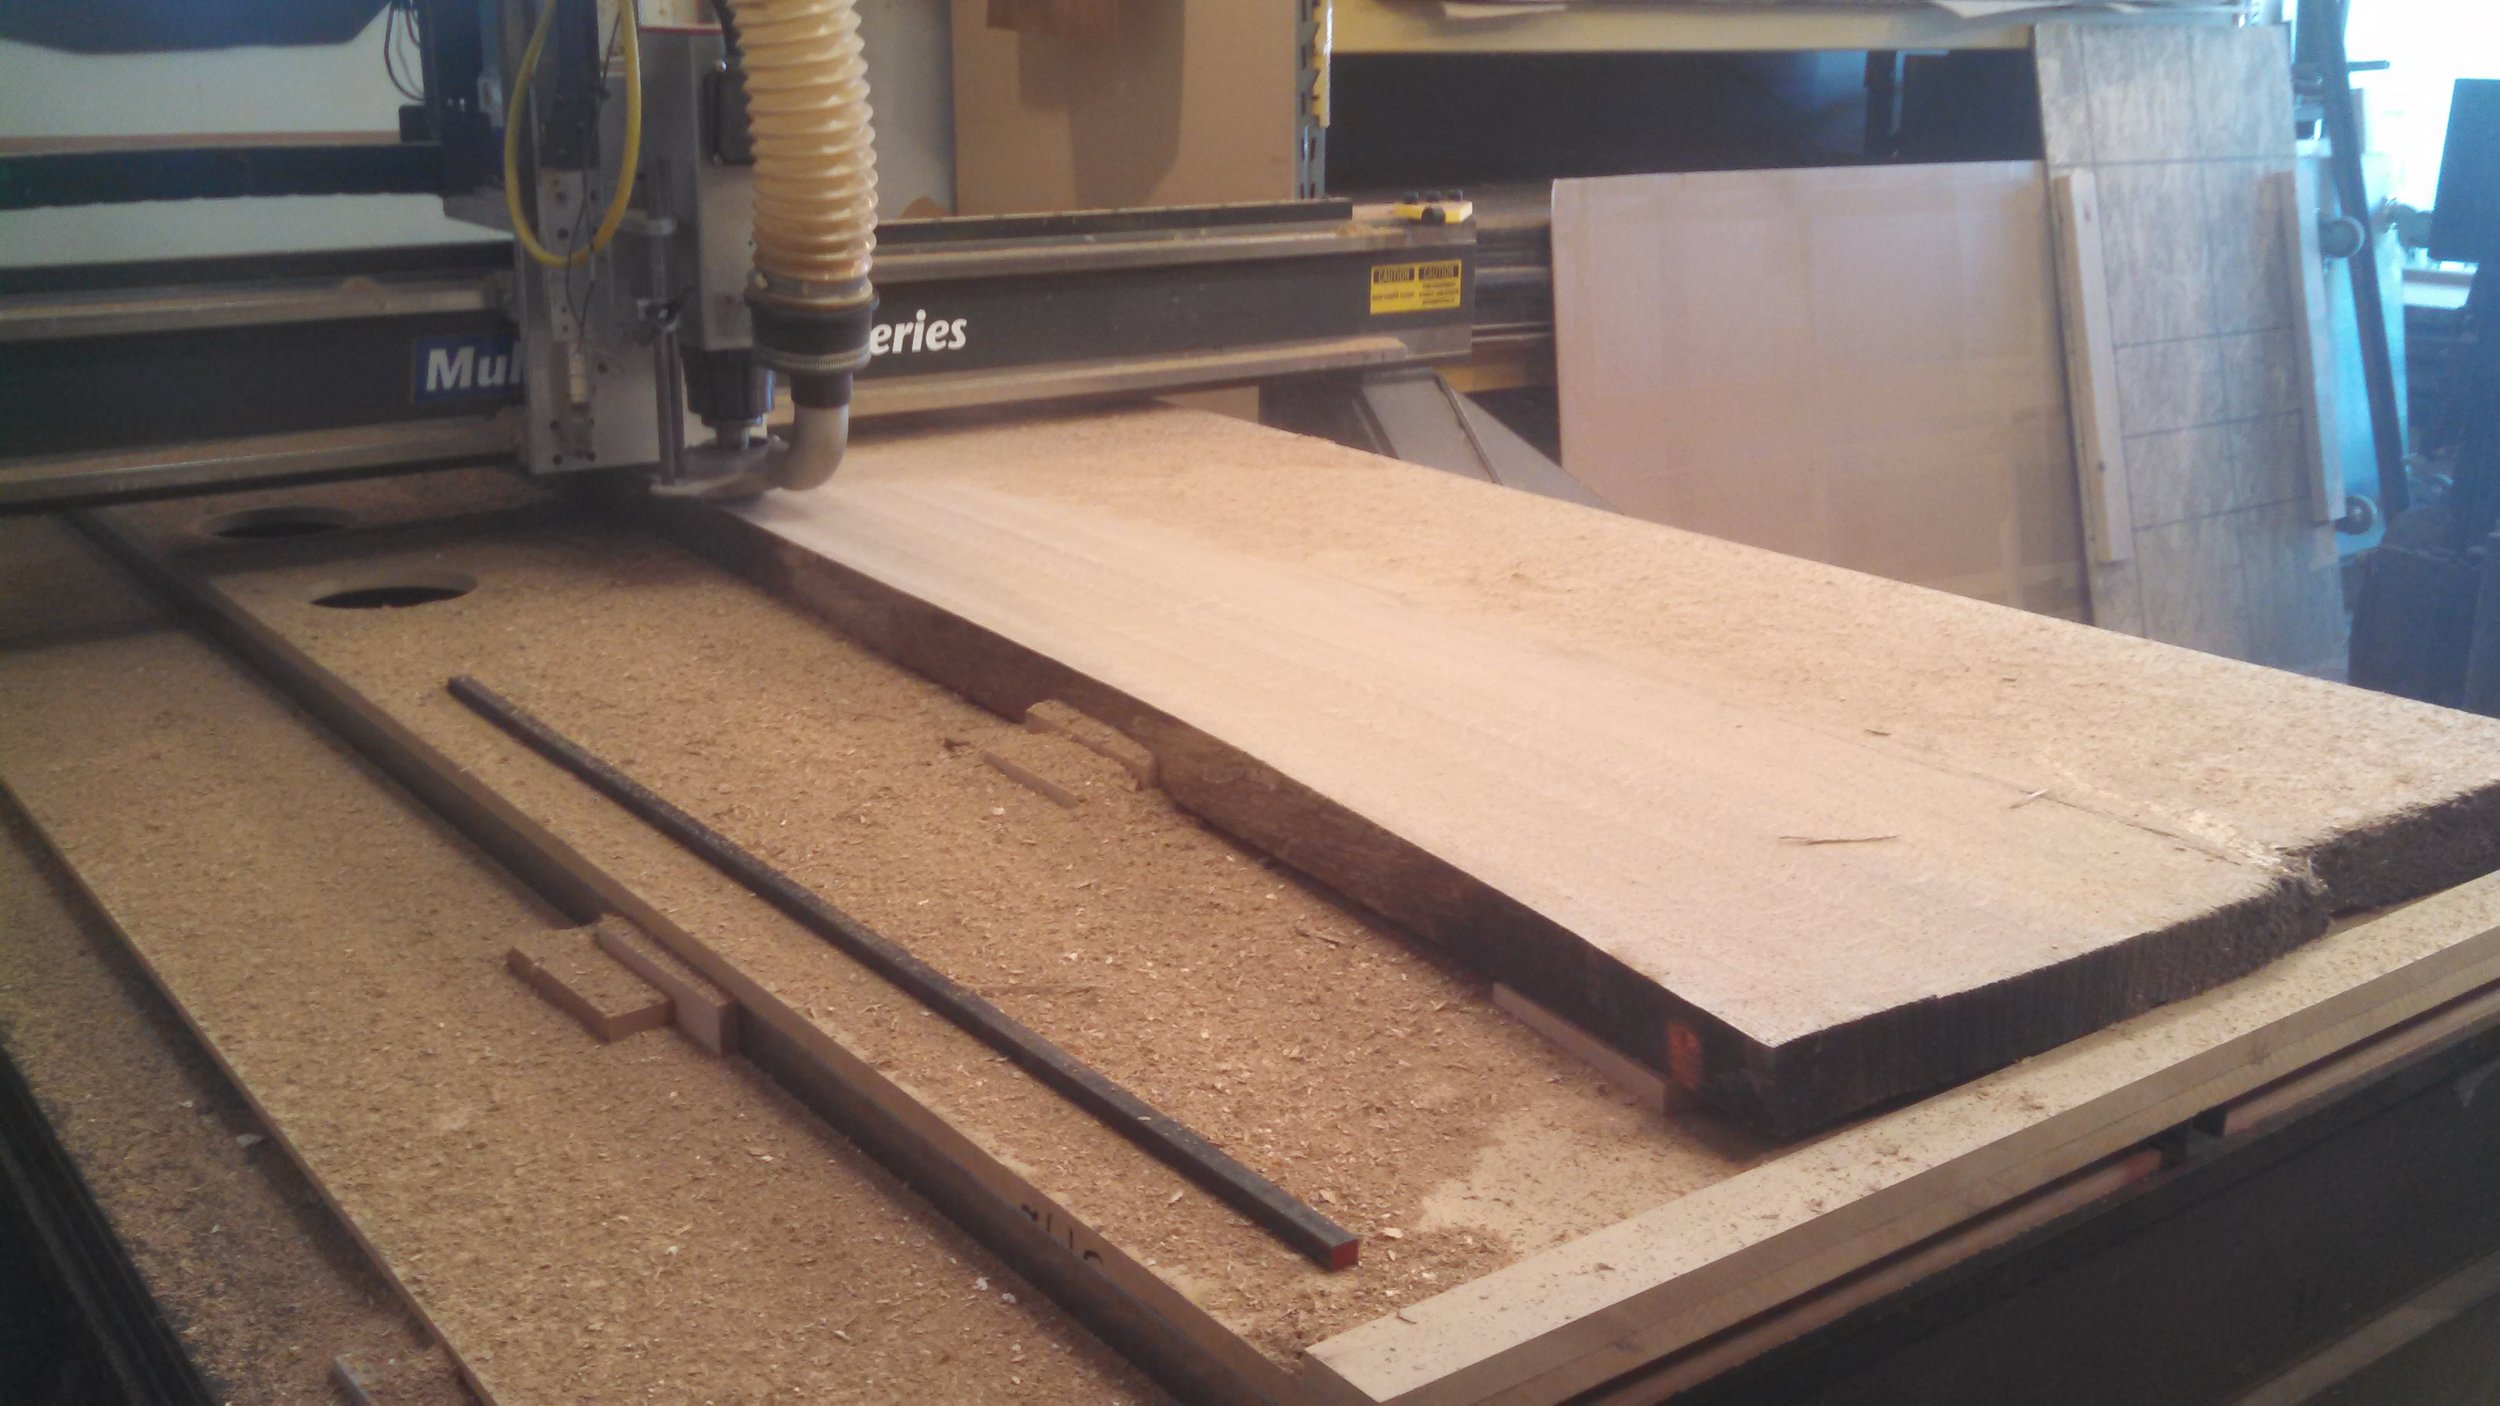 surfacing large live edge solid wood slab on our CNC router